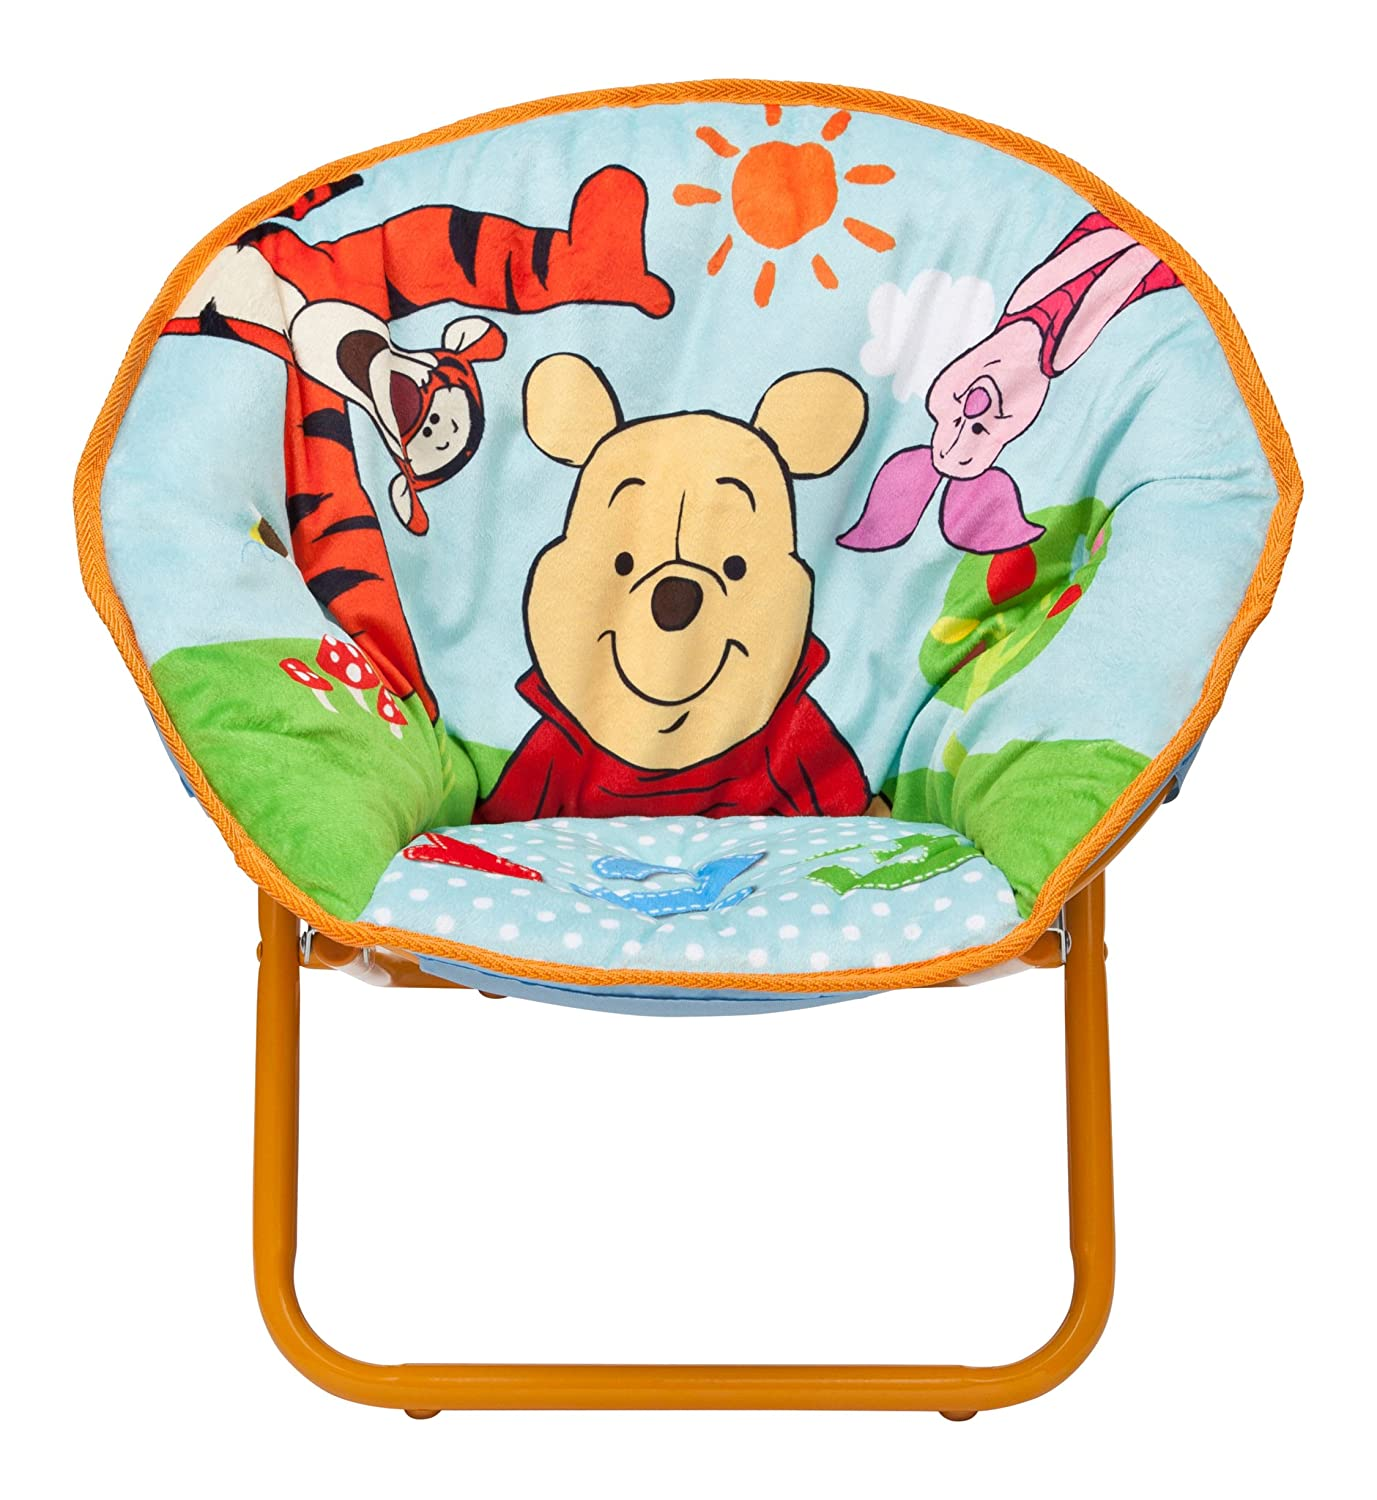 Disney Winnie the Pooh Children's Saucer Chair Delta Children TC85847WP